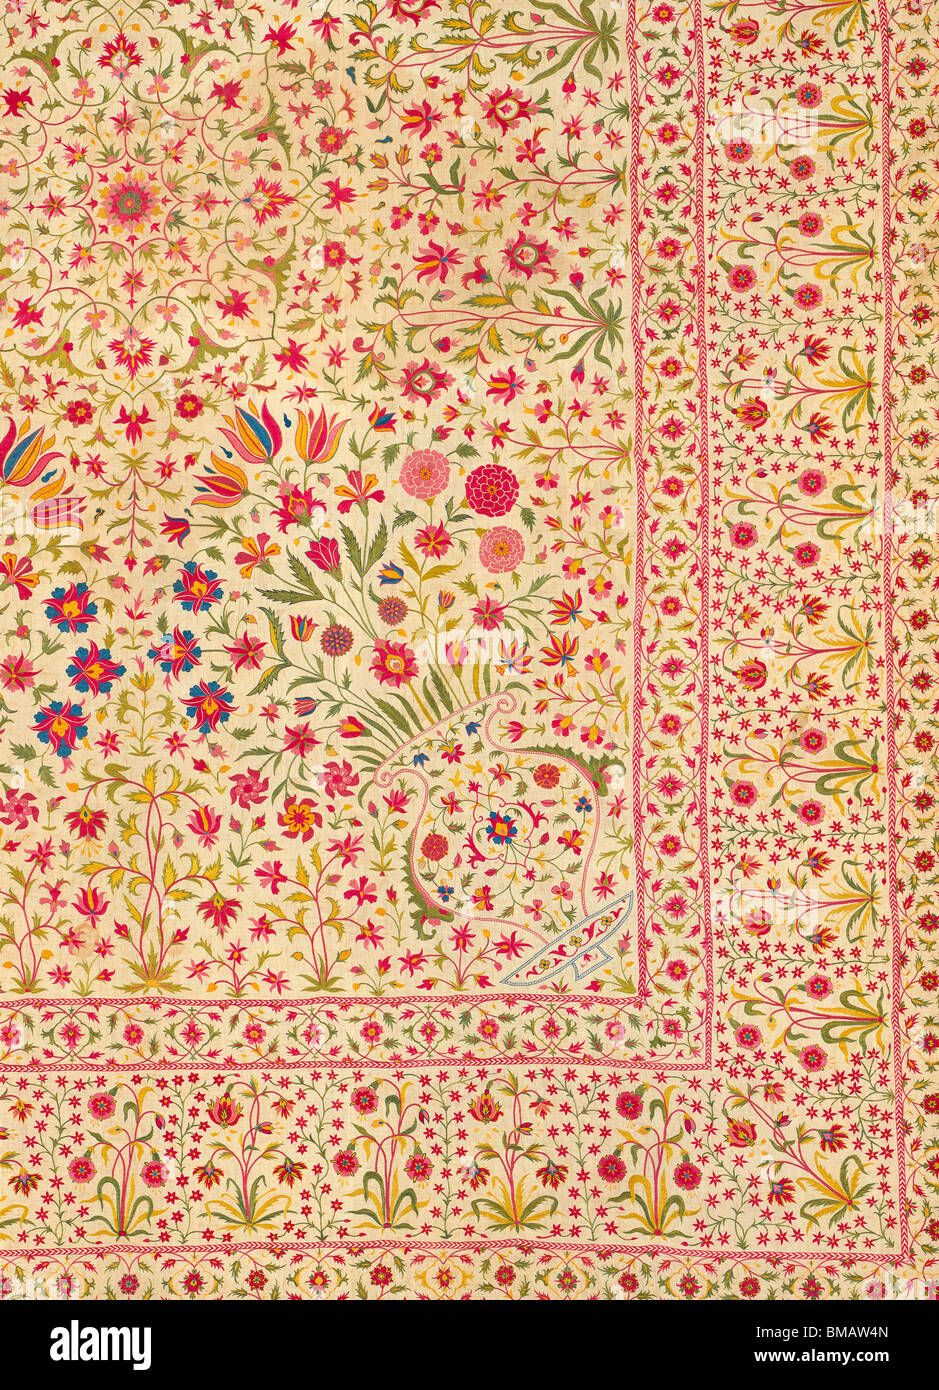 Floorspread, detail. India, 18th century - Stock Image